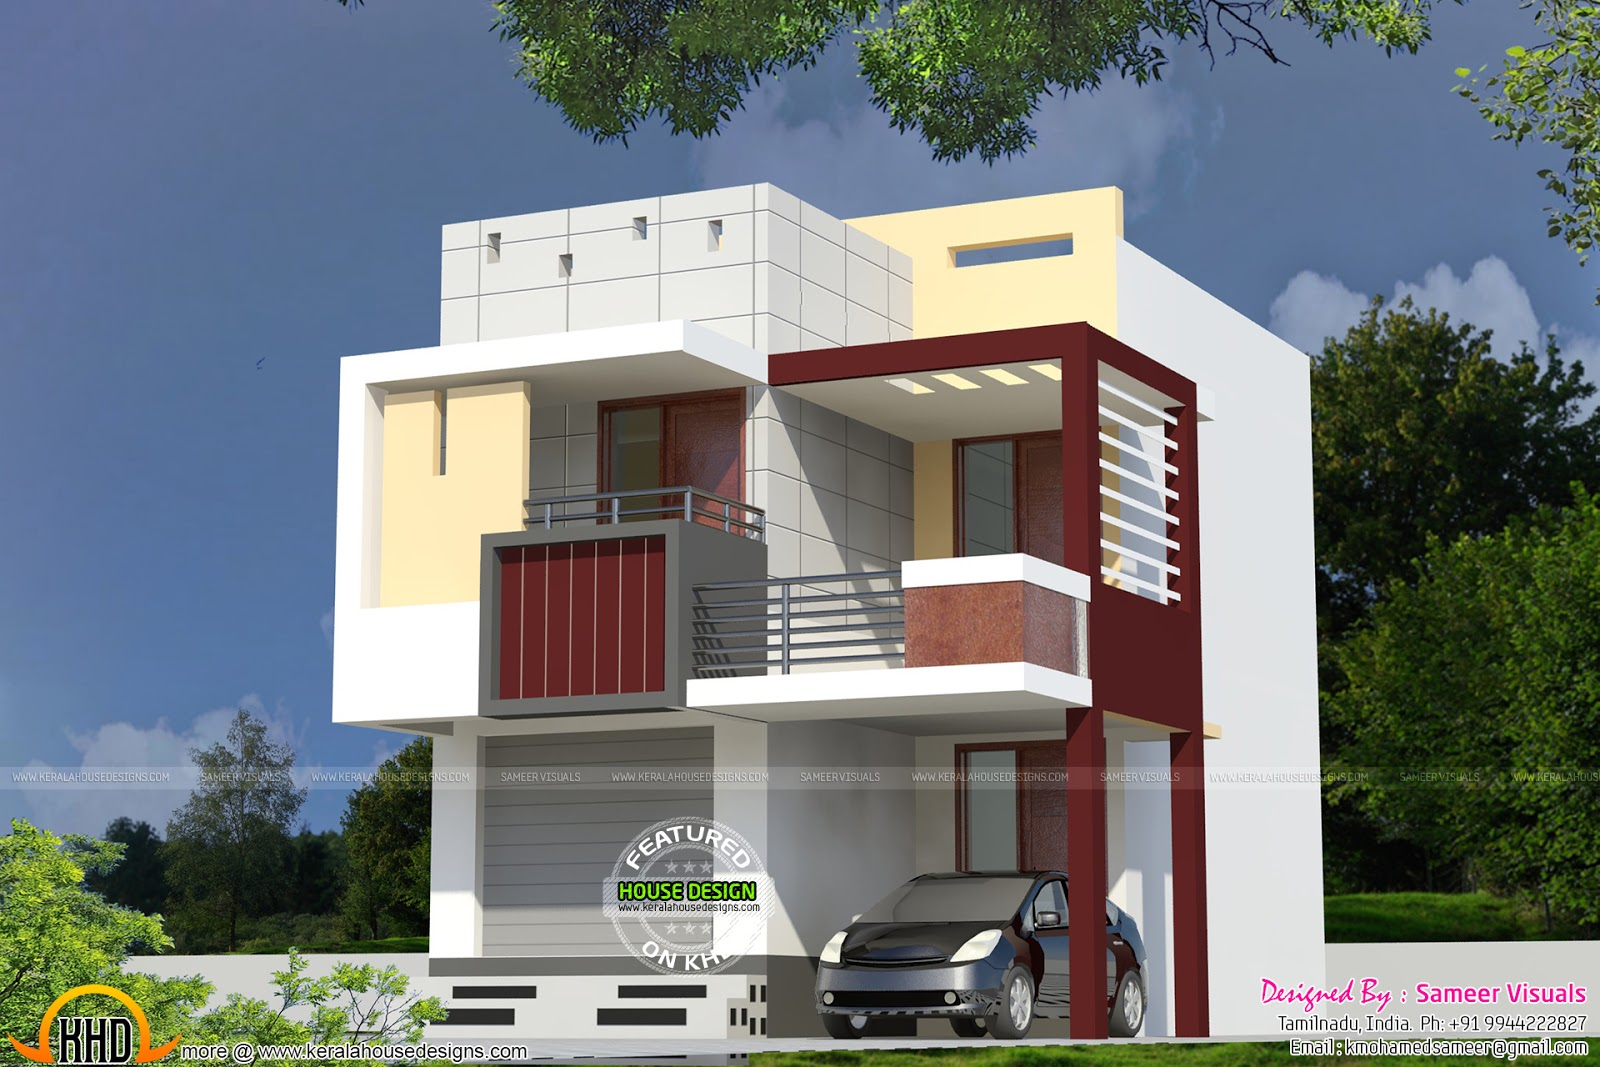 Small houses, House elevation and 3d rendering on Pinterest